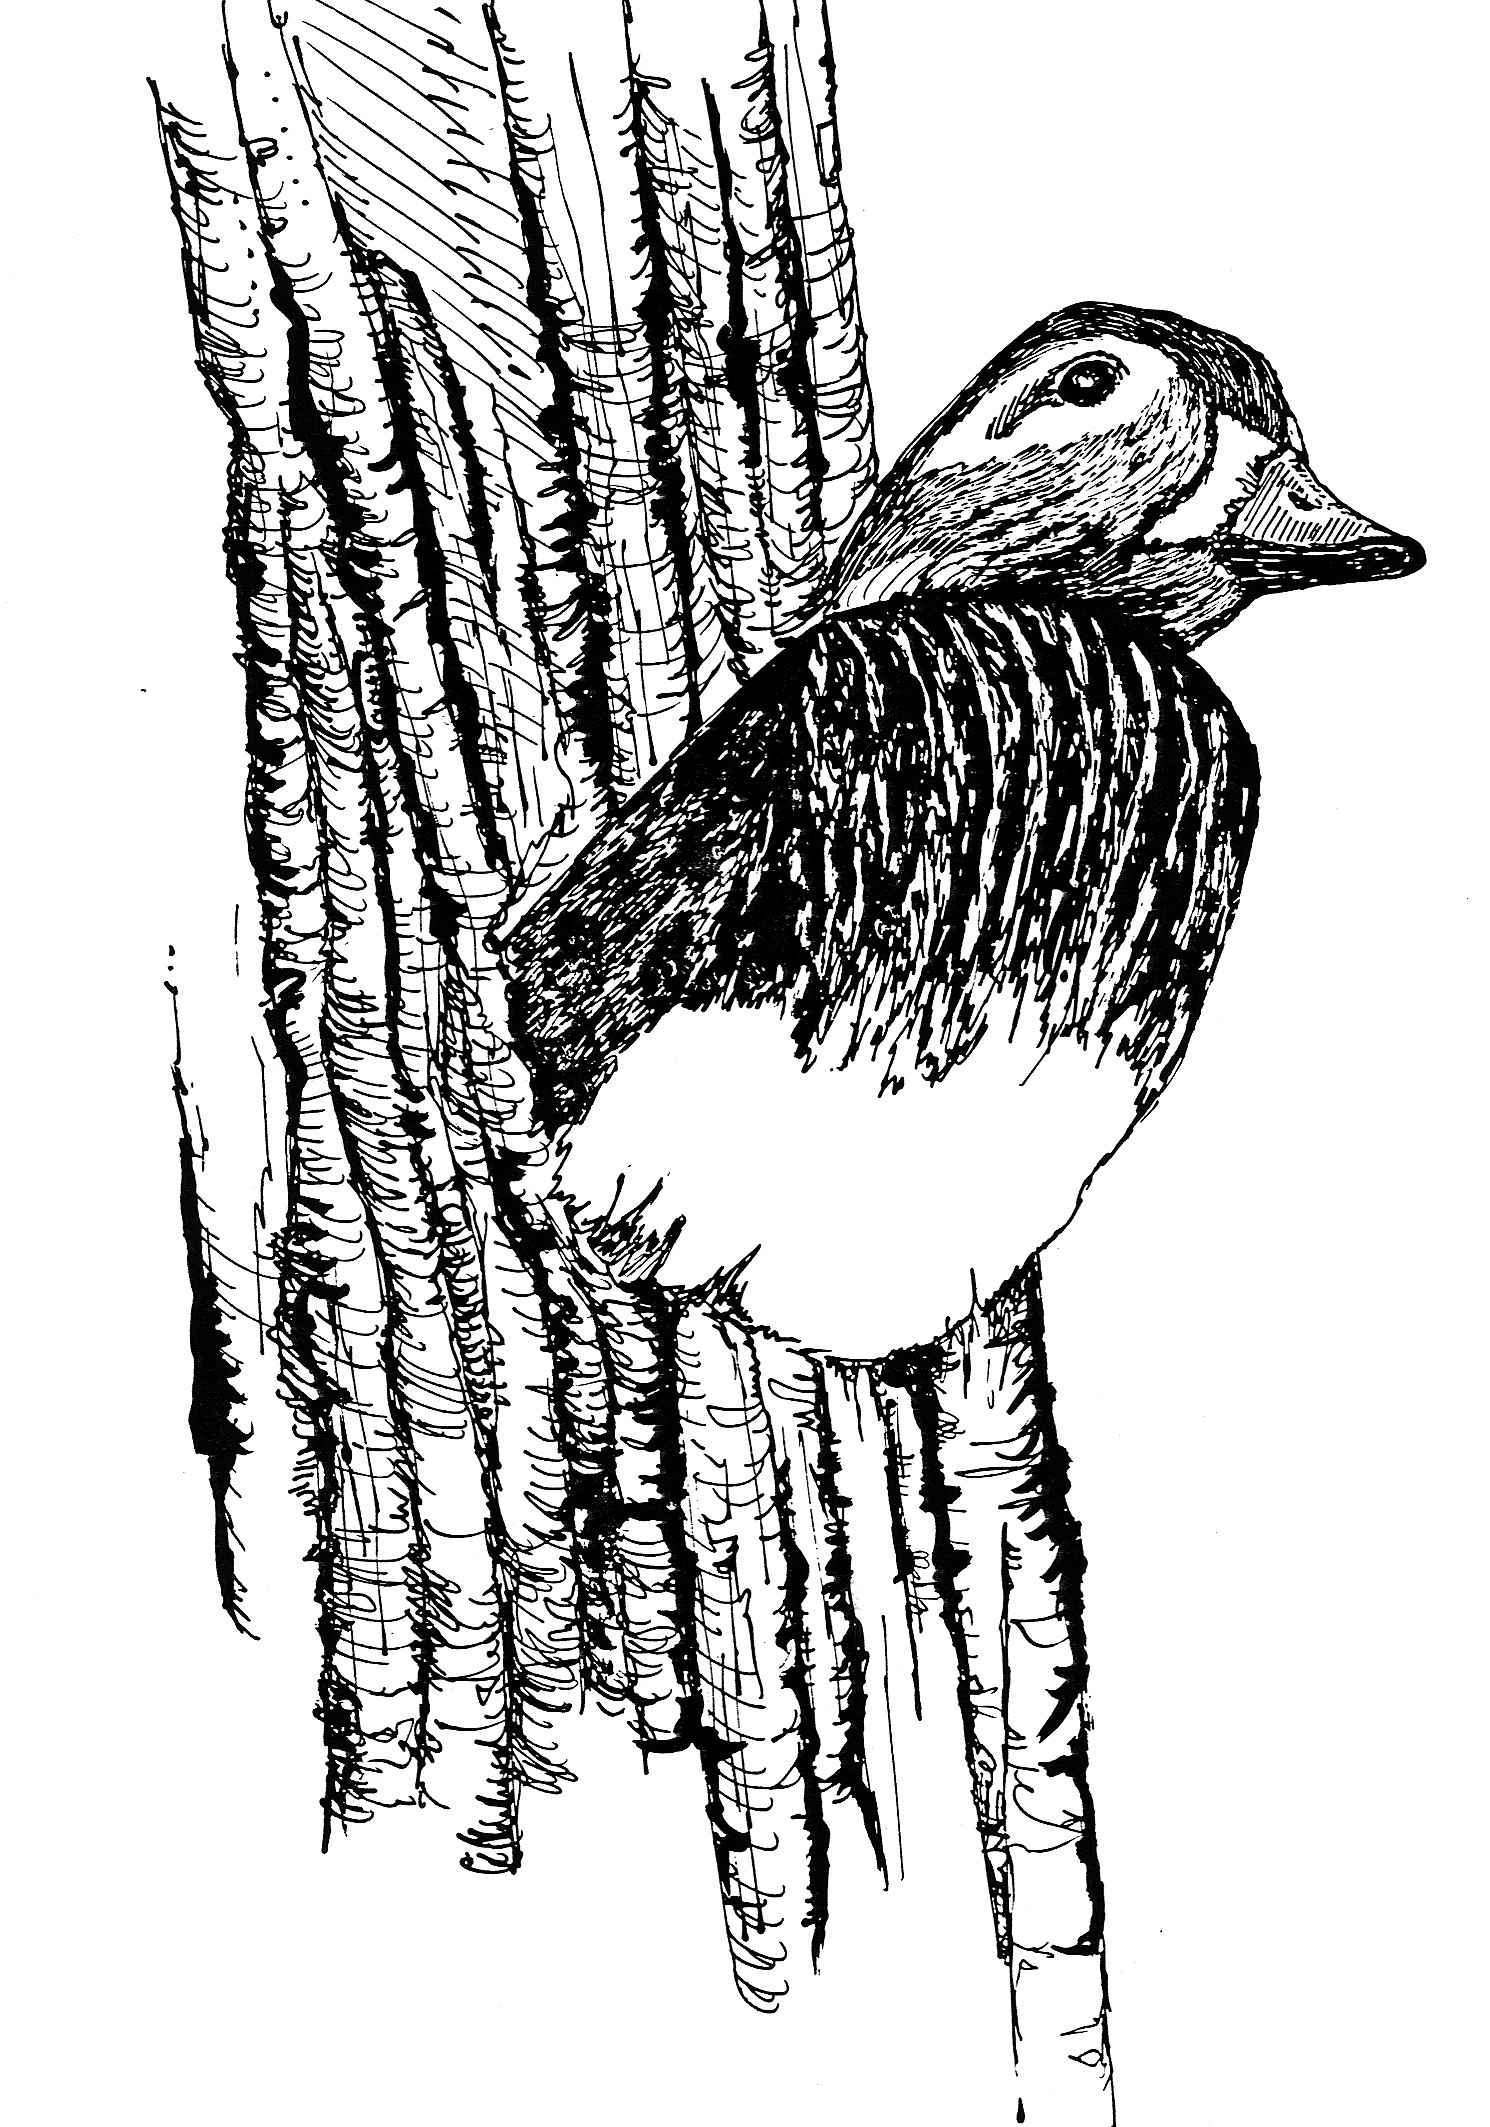 Line Art Duck : File line drawing art duck in nest g wikimedia commons